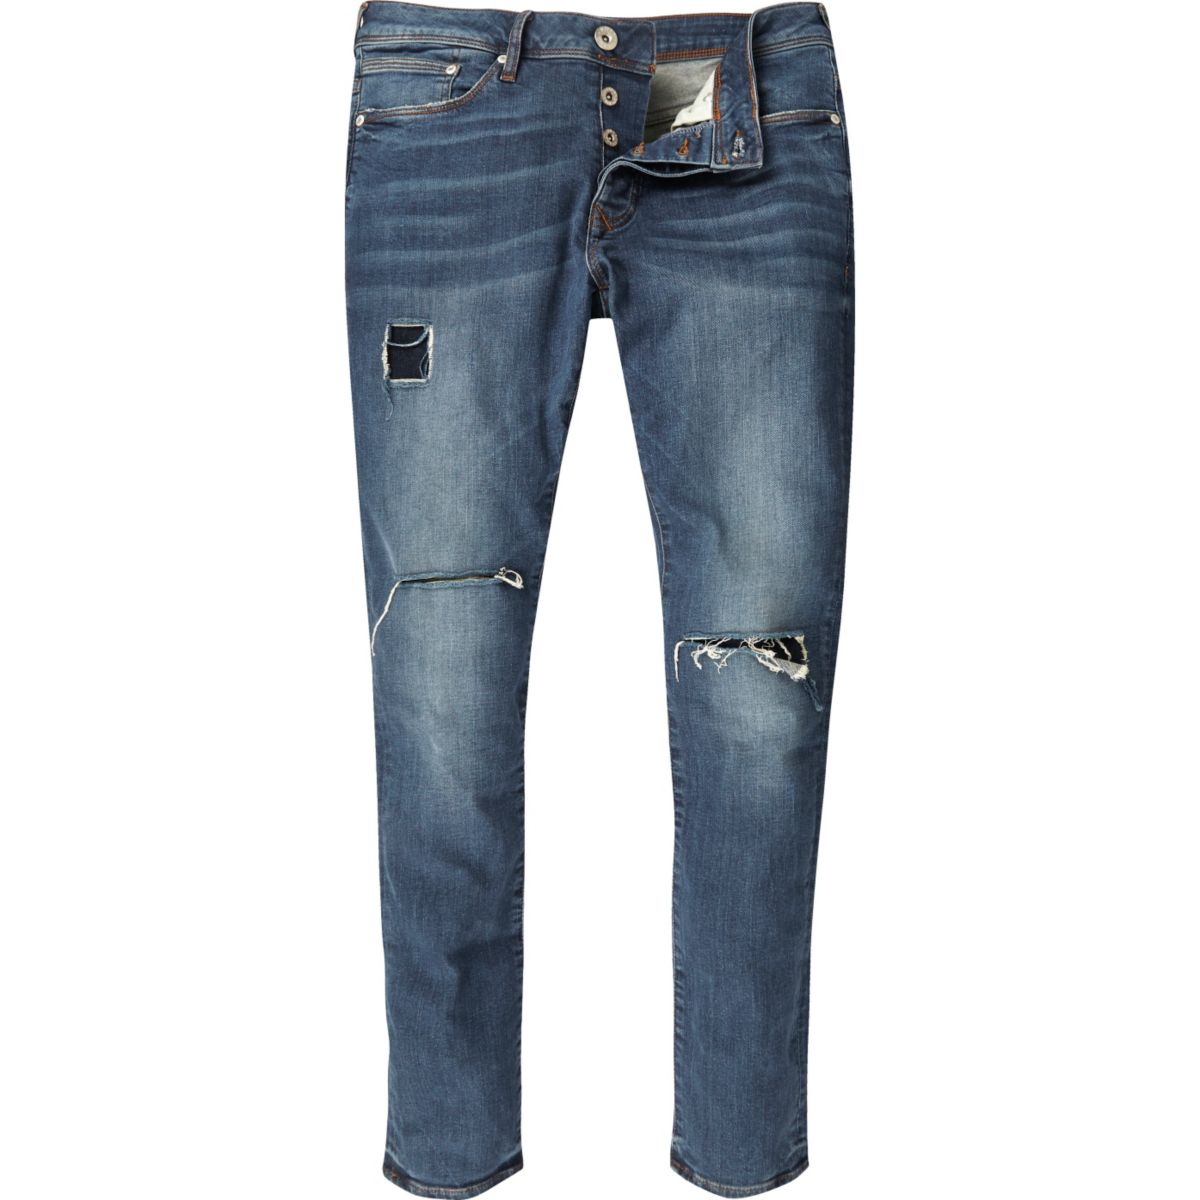 zerrissene jeans herren mens patched jeans images mens. Black Bedroom Furniture Sets. Home Design Ideas